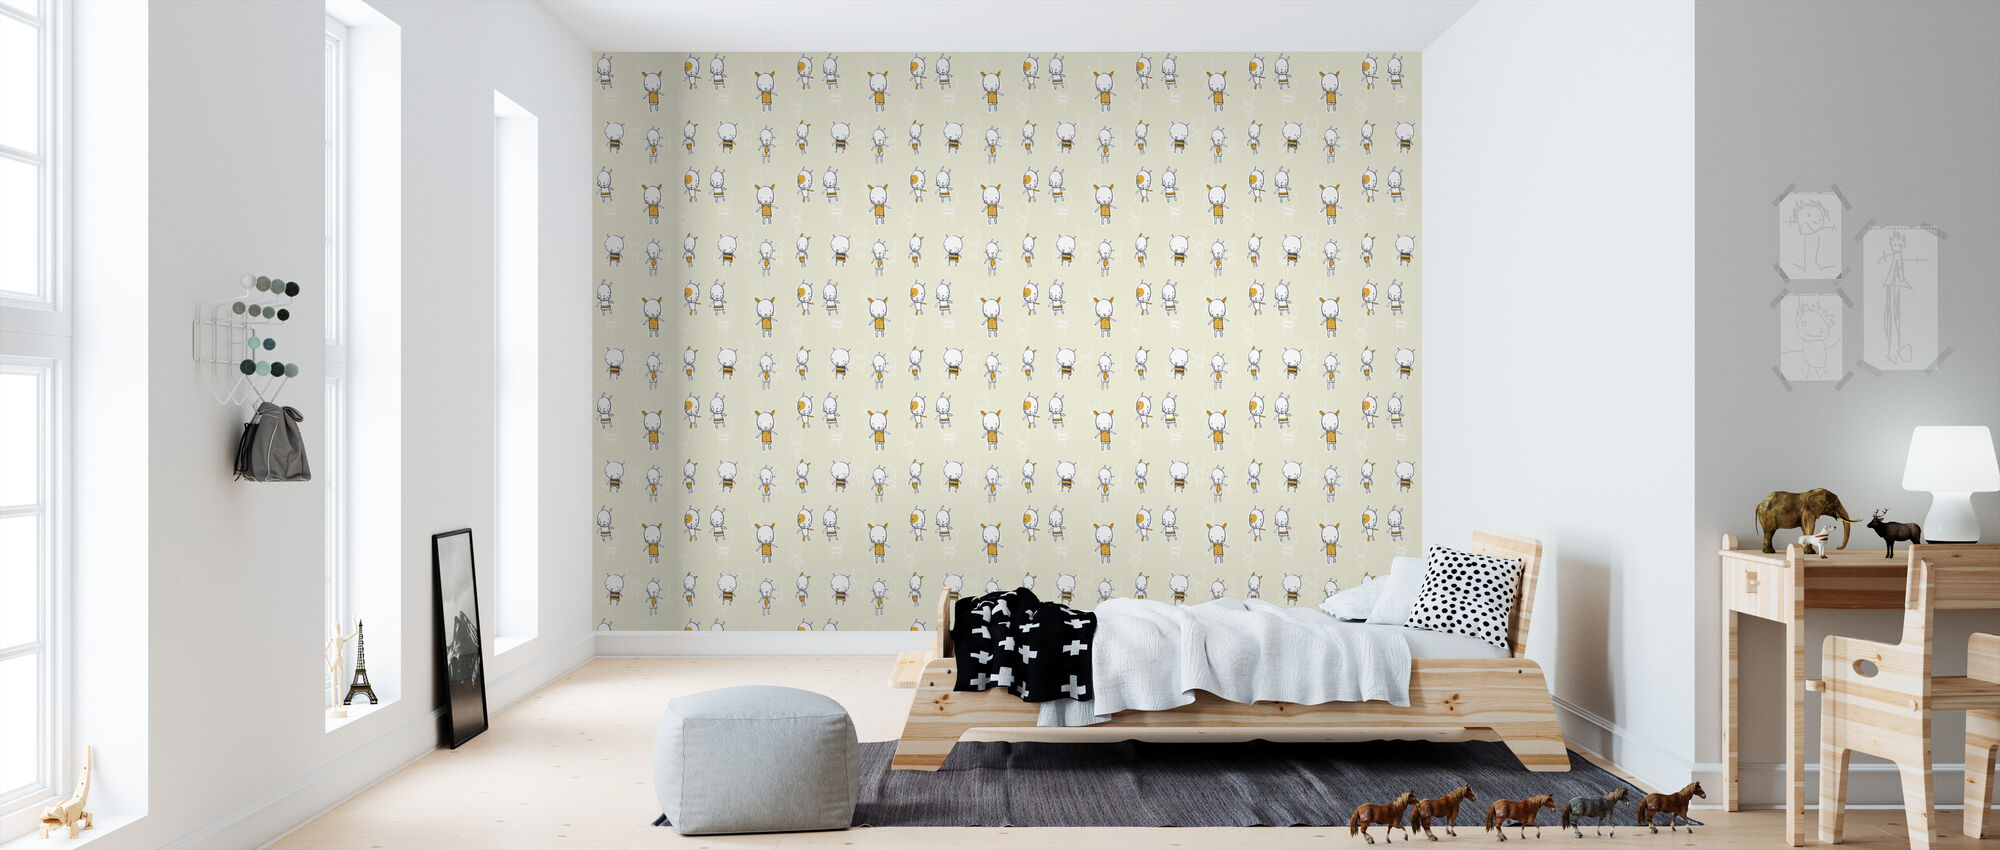 Bear With Me - Wallpaper - Kids Room